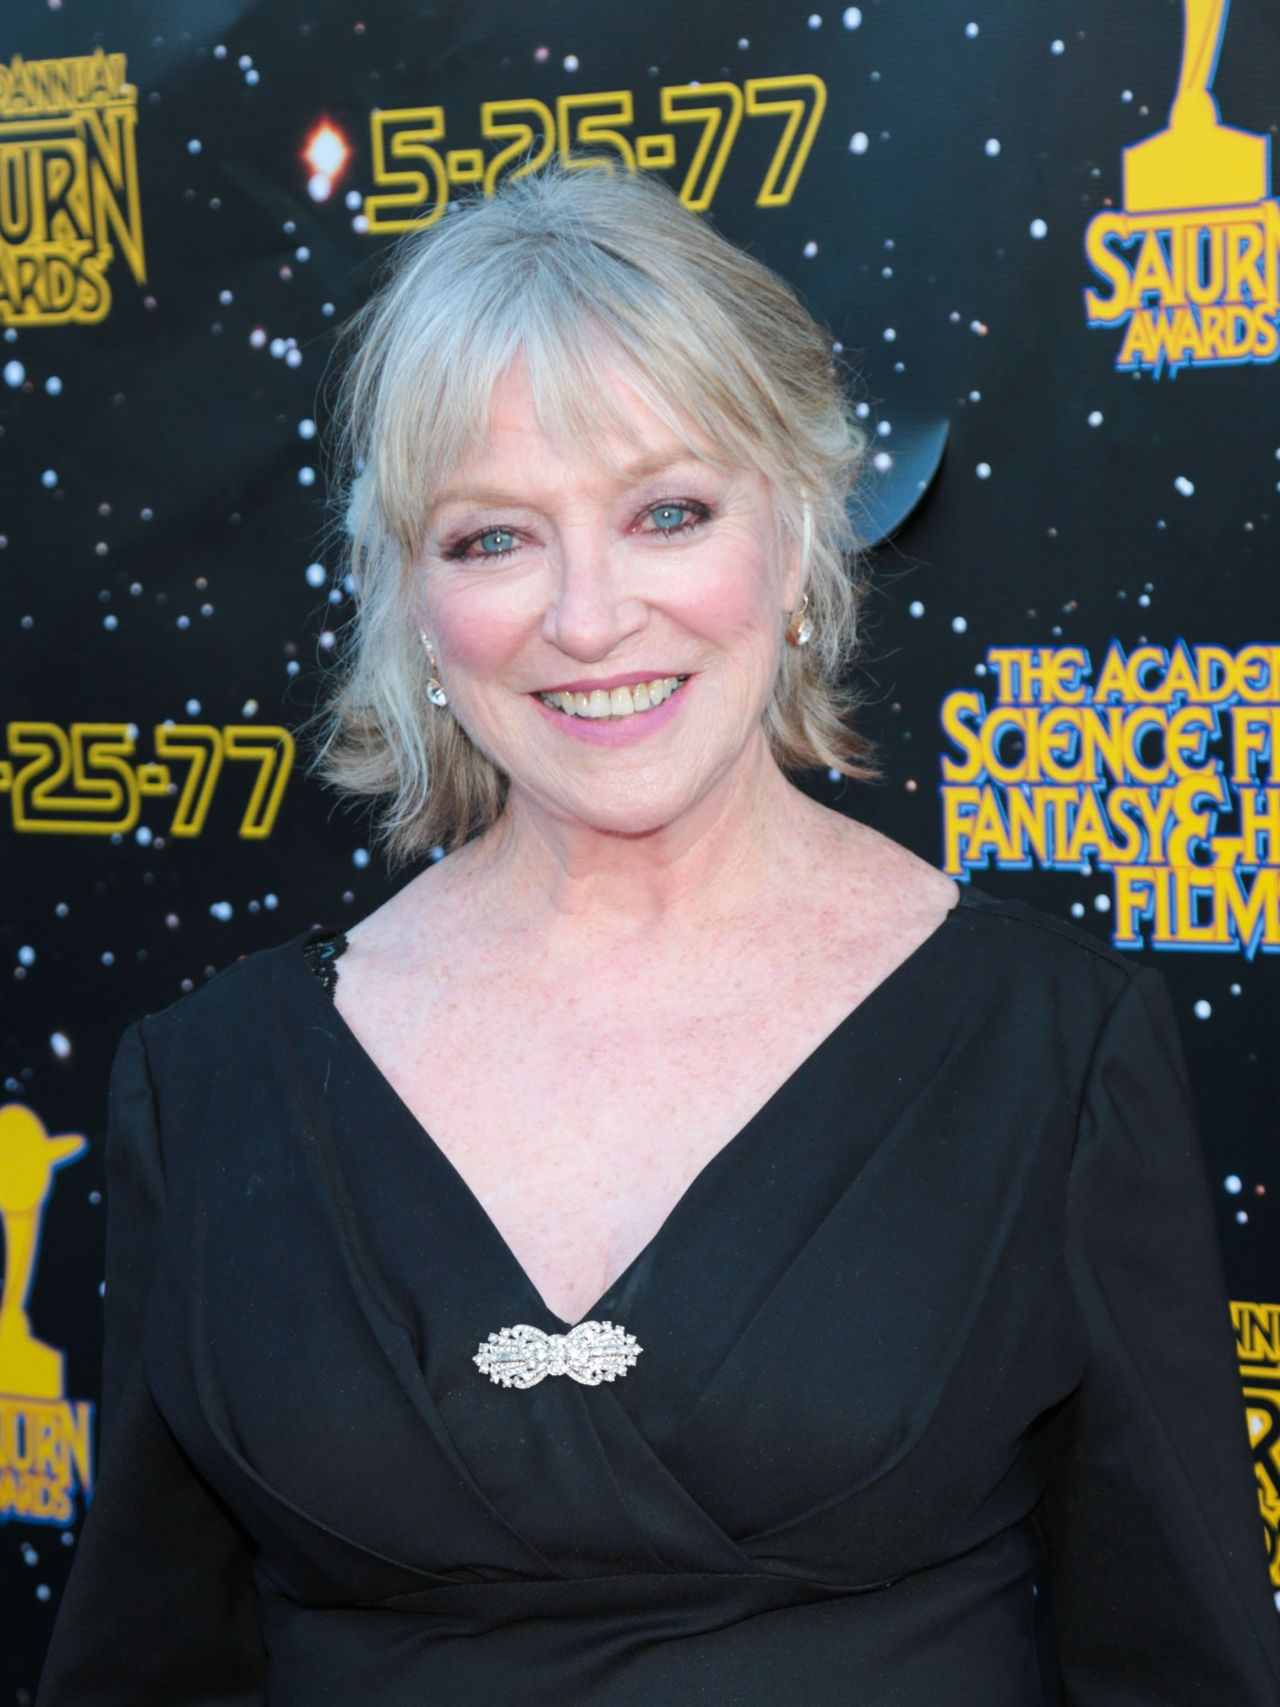 Veronica Cartwright Saturn Awards In Los Angeles 06 28 2017